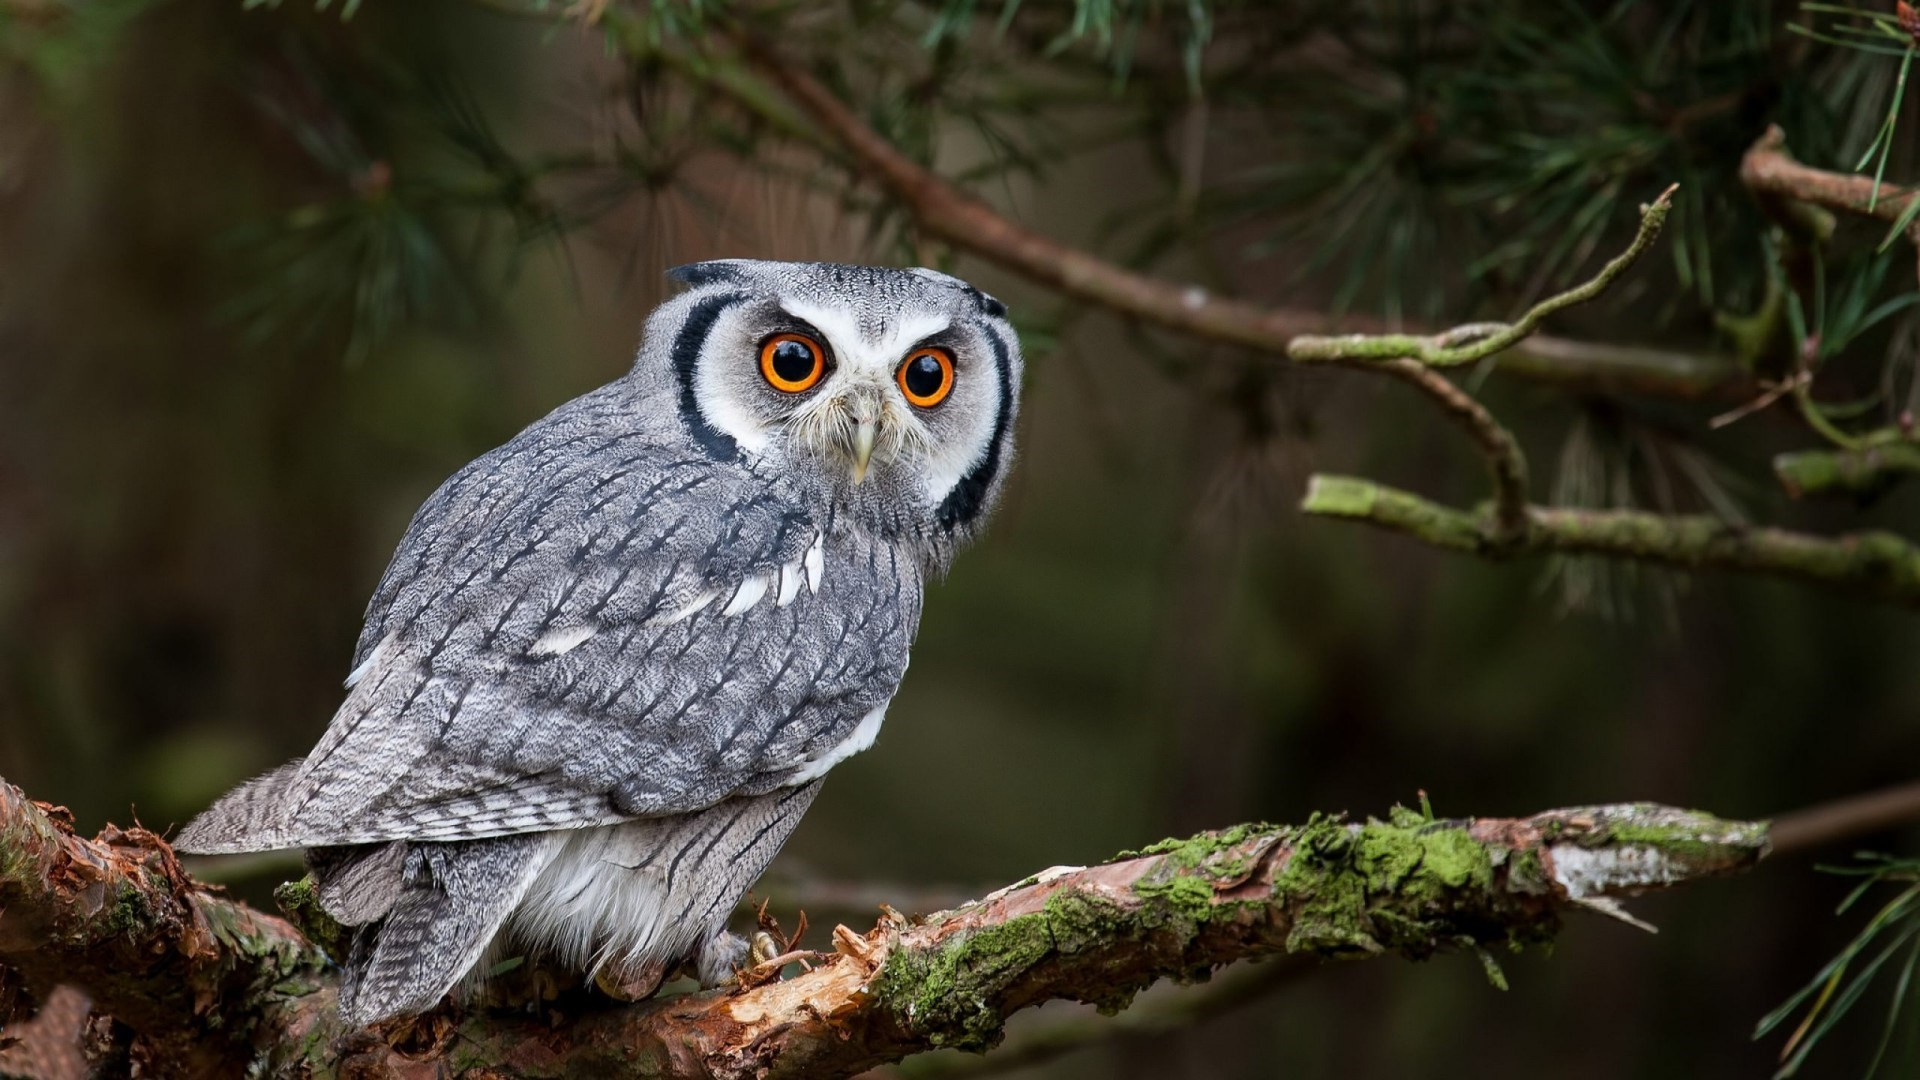 Res: 1920x1080, White Owl Backgrounds For desktop